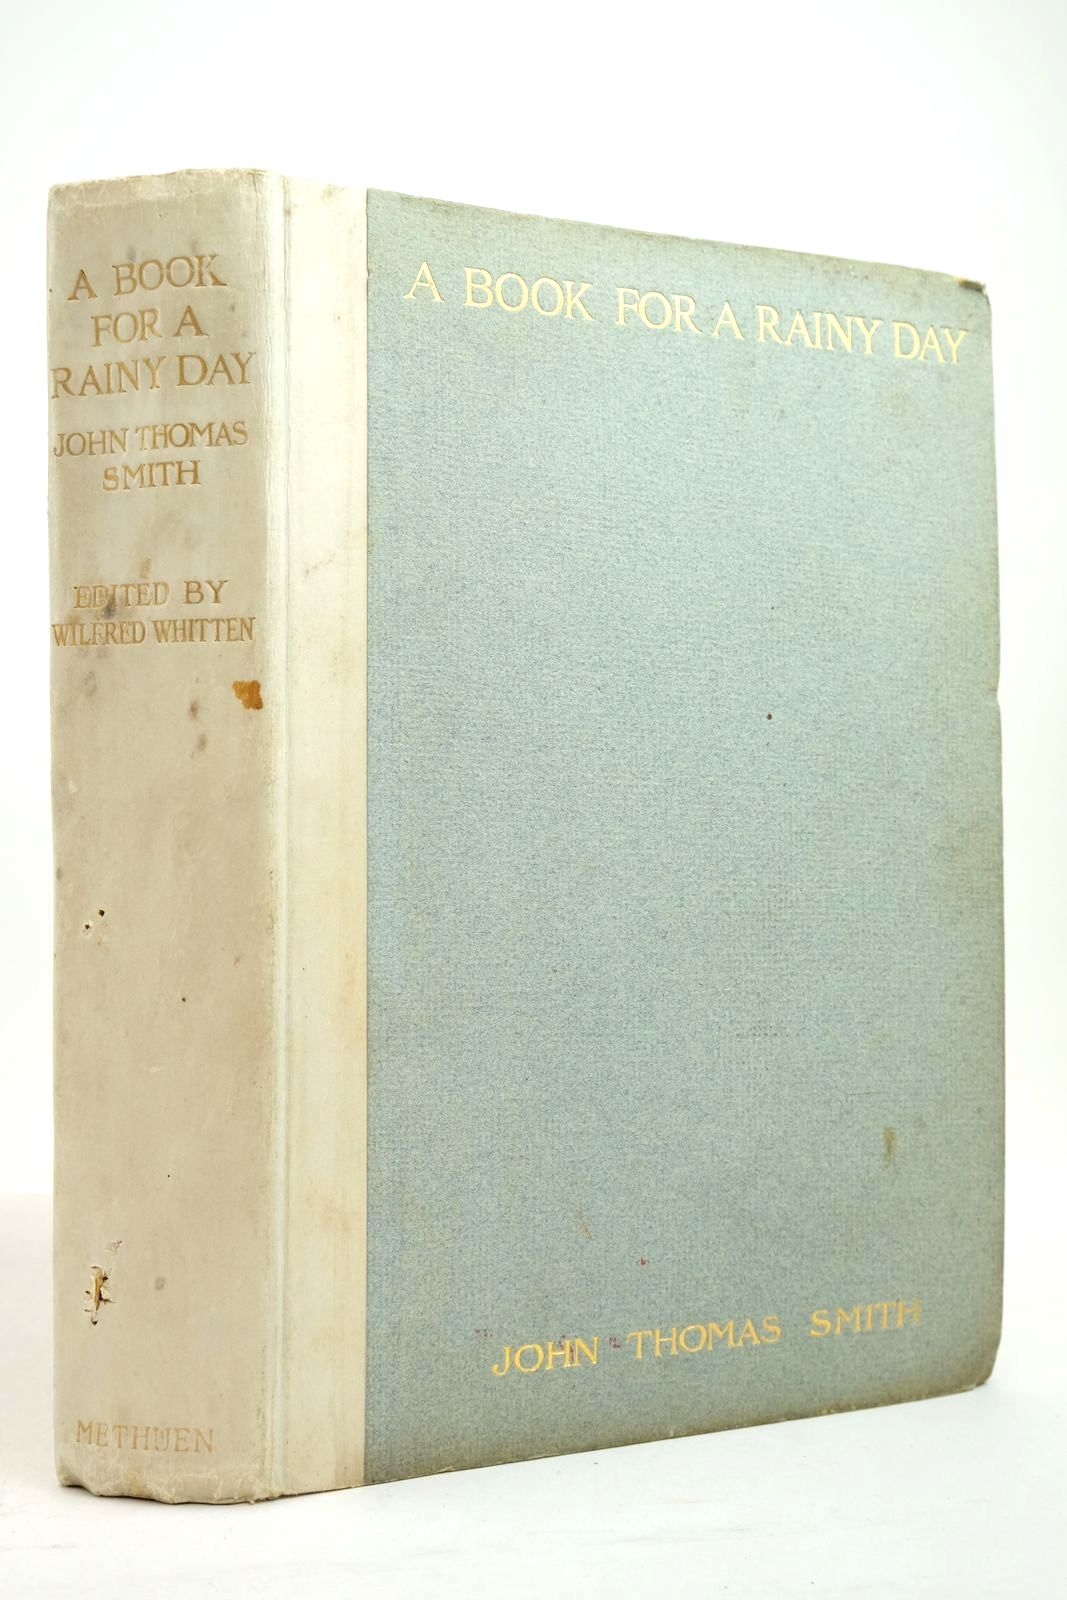 Photo of A BOOK FOR A RAINY DAY OR RECOLLECTIONS OF THE EVENTS OF THE YEARS 1766-1833- Stock Number: 2134804